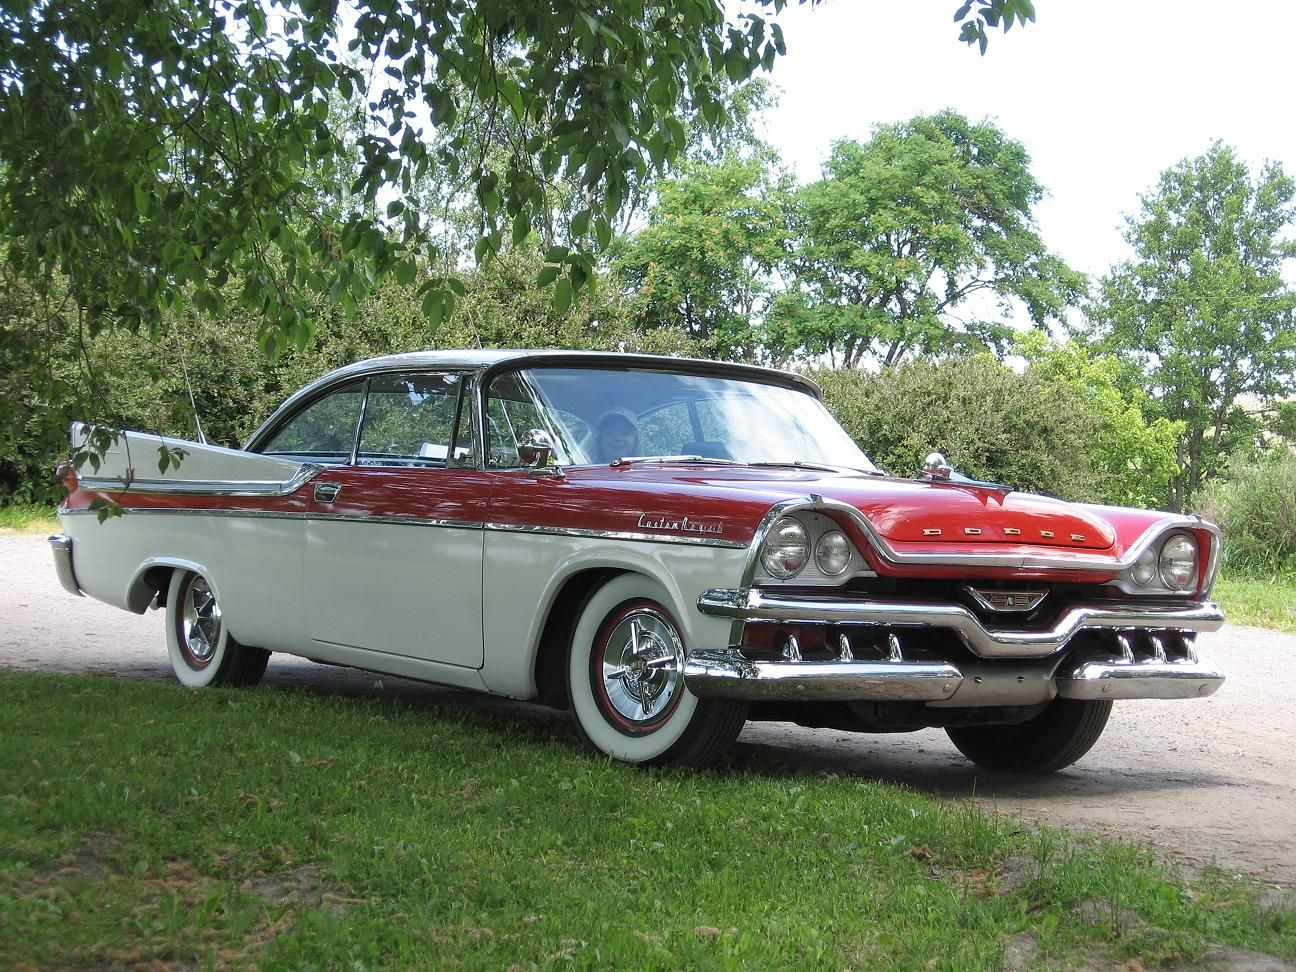 1957 dodge custom royal 2 d ht 325 cid v8 with twin carbs and automatic